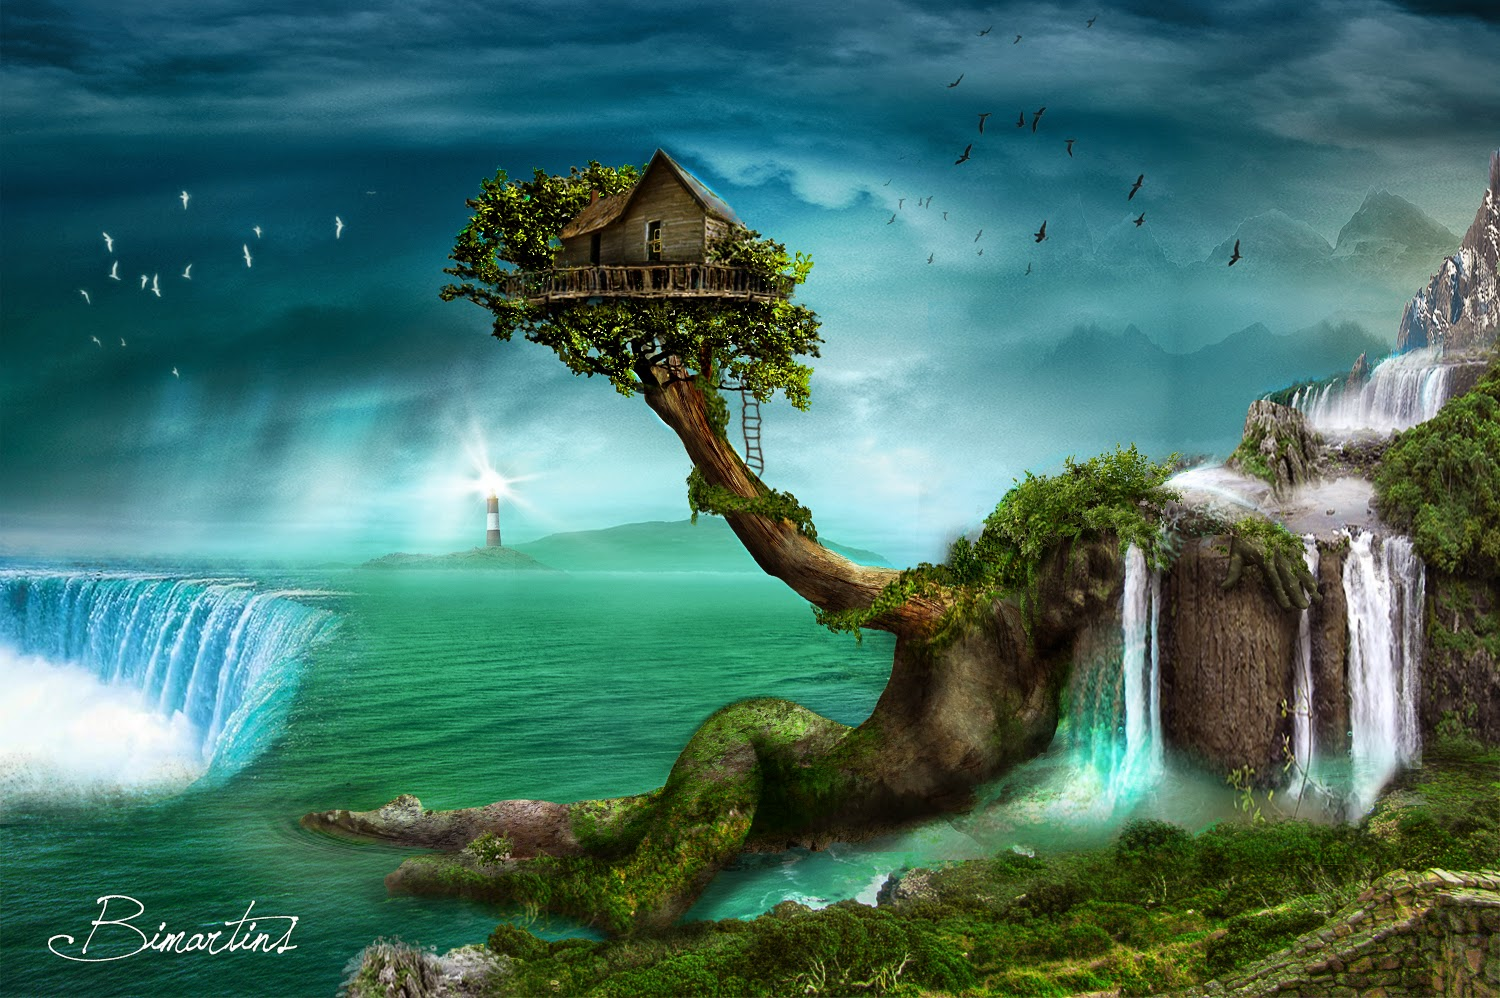 Treehouse Alone Near Sea Waterfalls Beautiful Dream Place